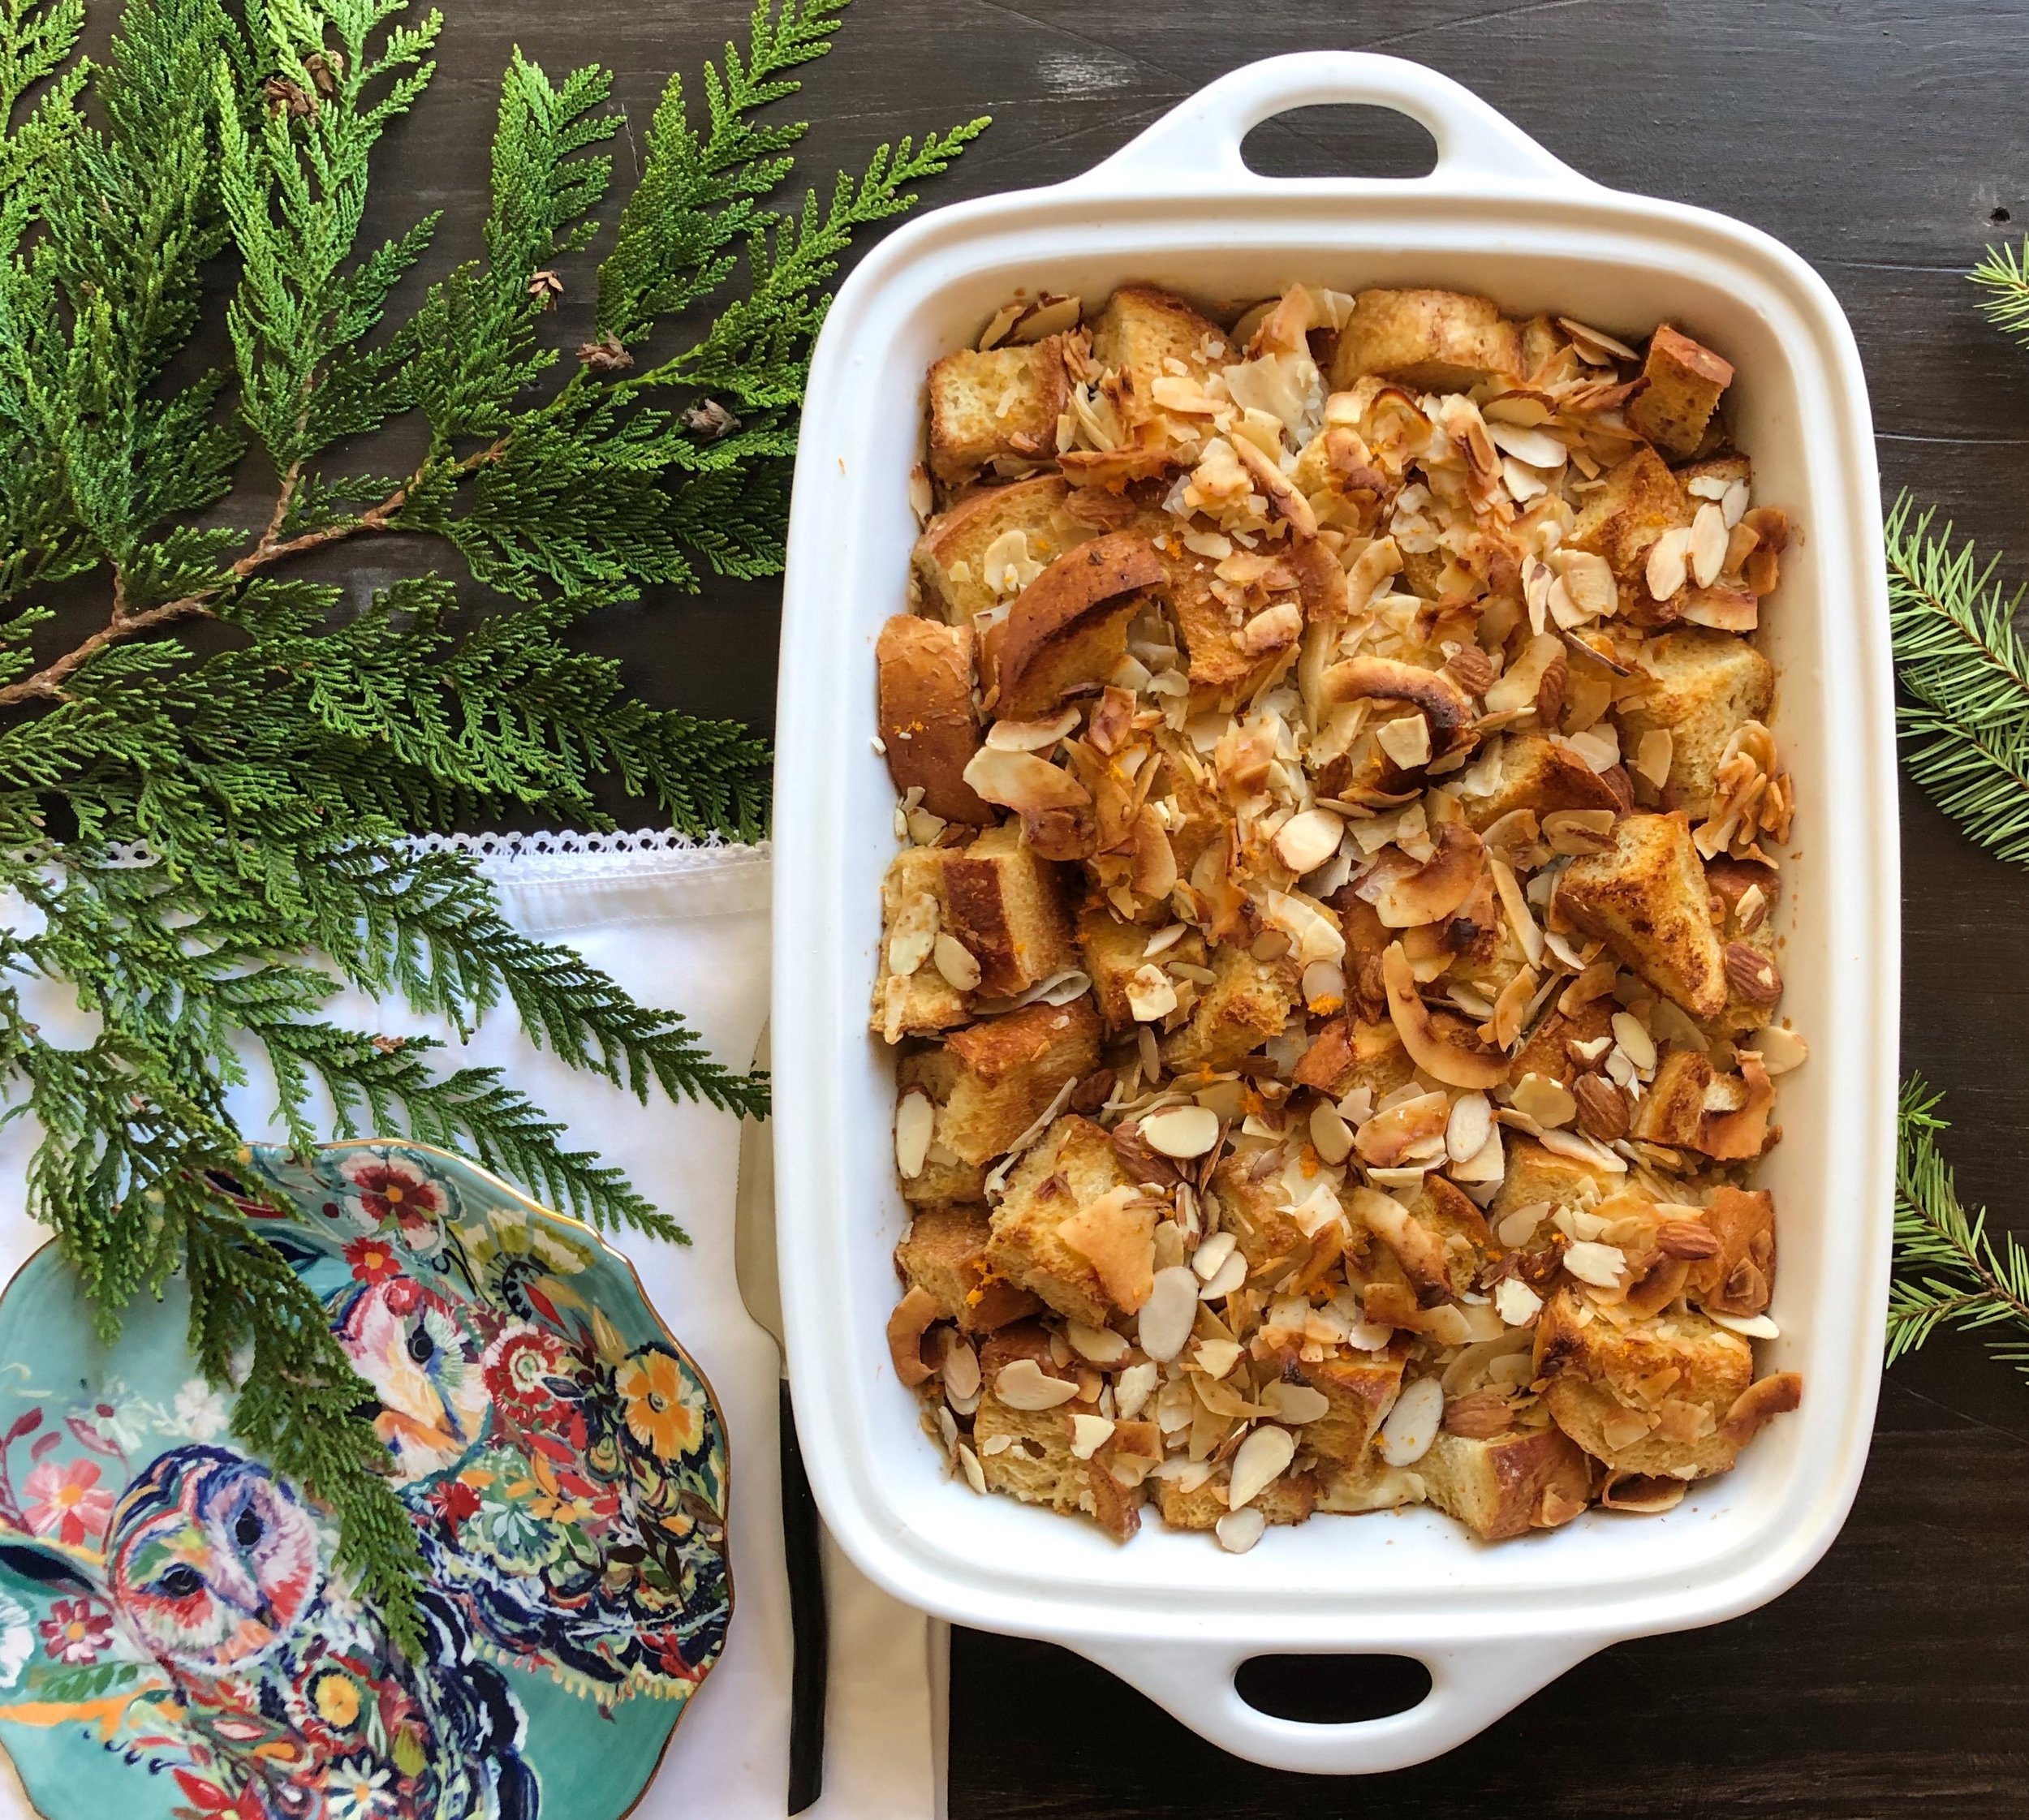 Florida Inspired Holiday Breakfast: Coconut and Orange Bread Pudding - Bread pudding for the holidays just feels…. right.I was inspired to infuse my Florida roots into this new recipe and used coconut milk and flakes, paired with fresh squeezed orange juice to create the most delicious bread pudding!